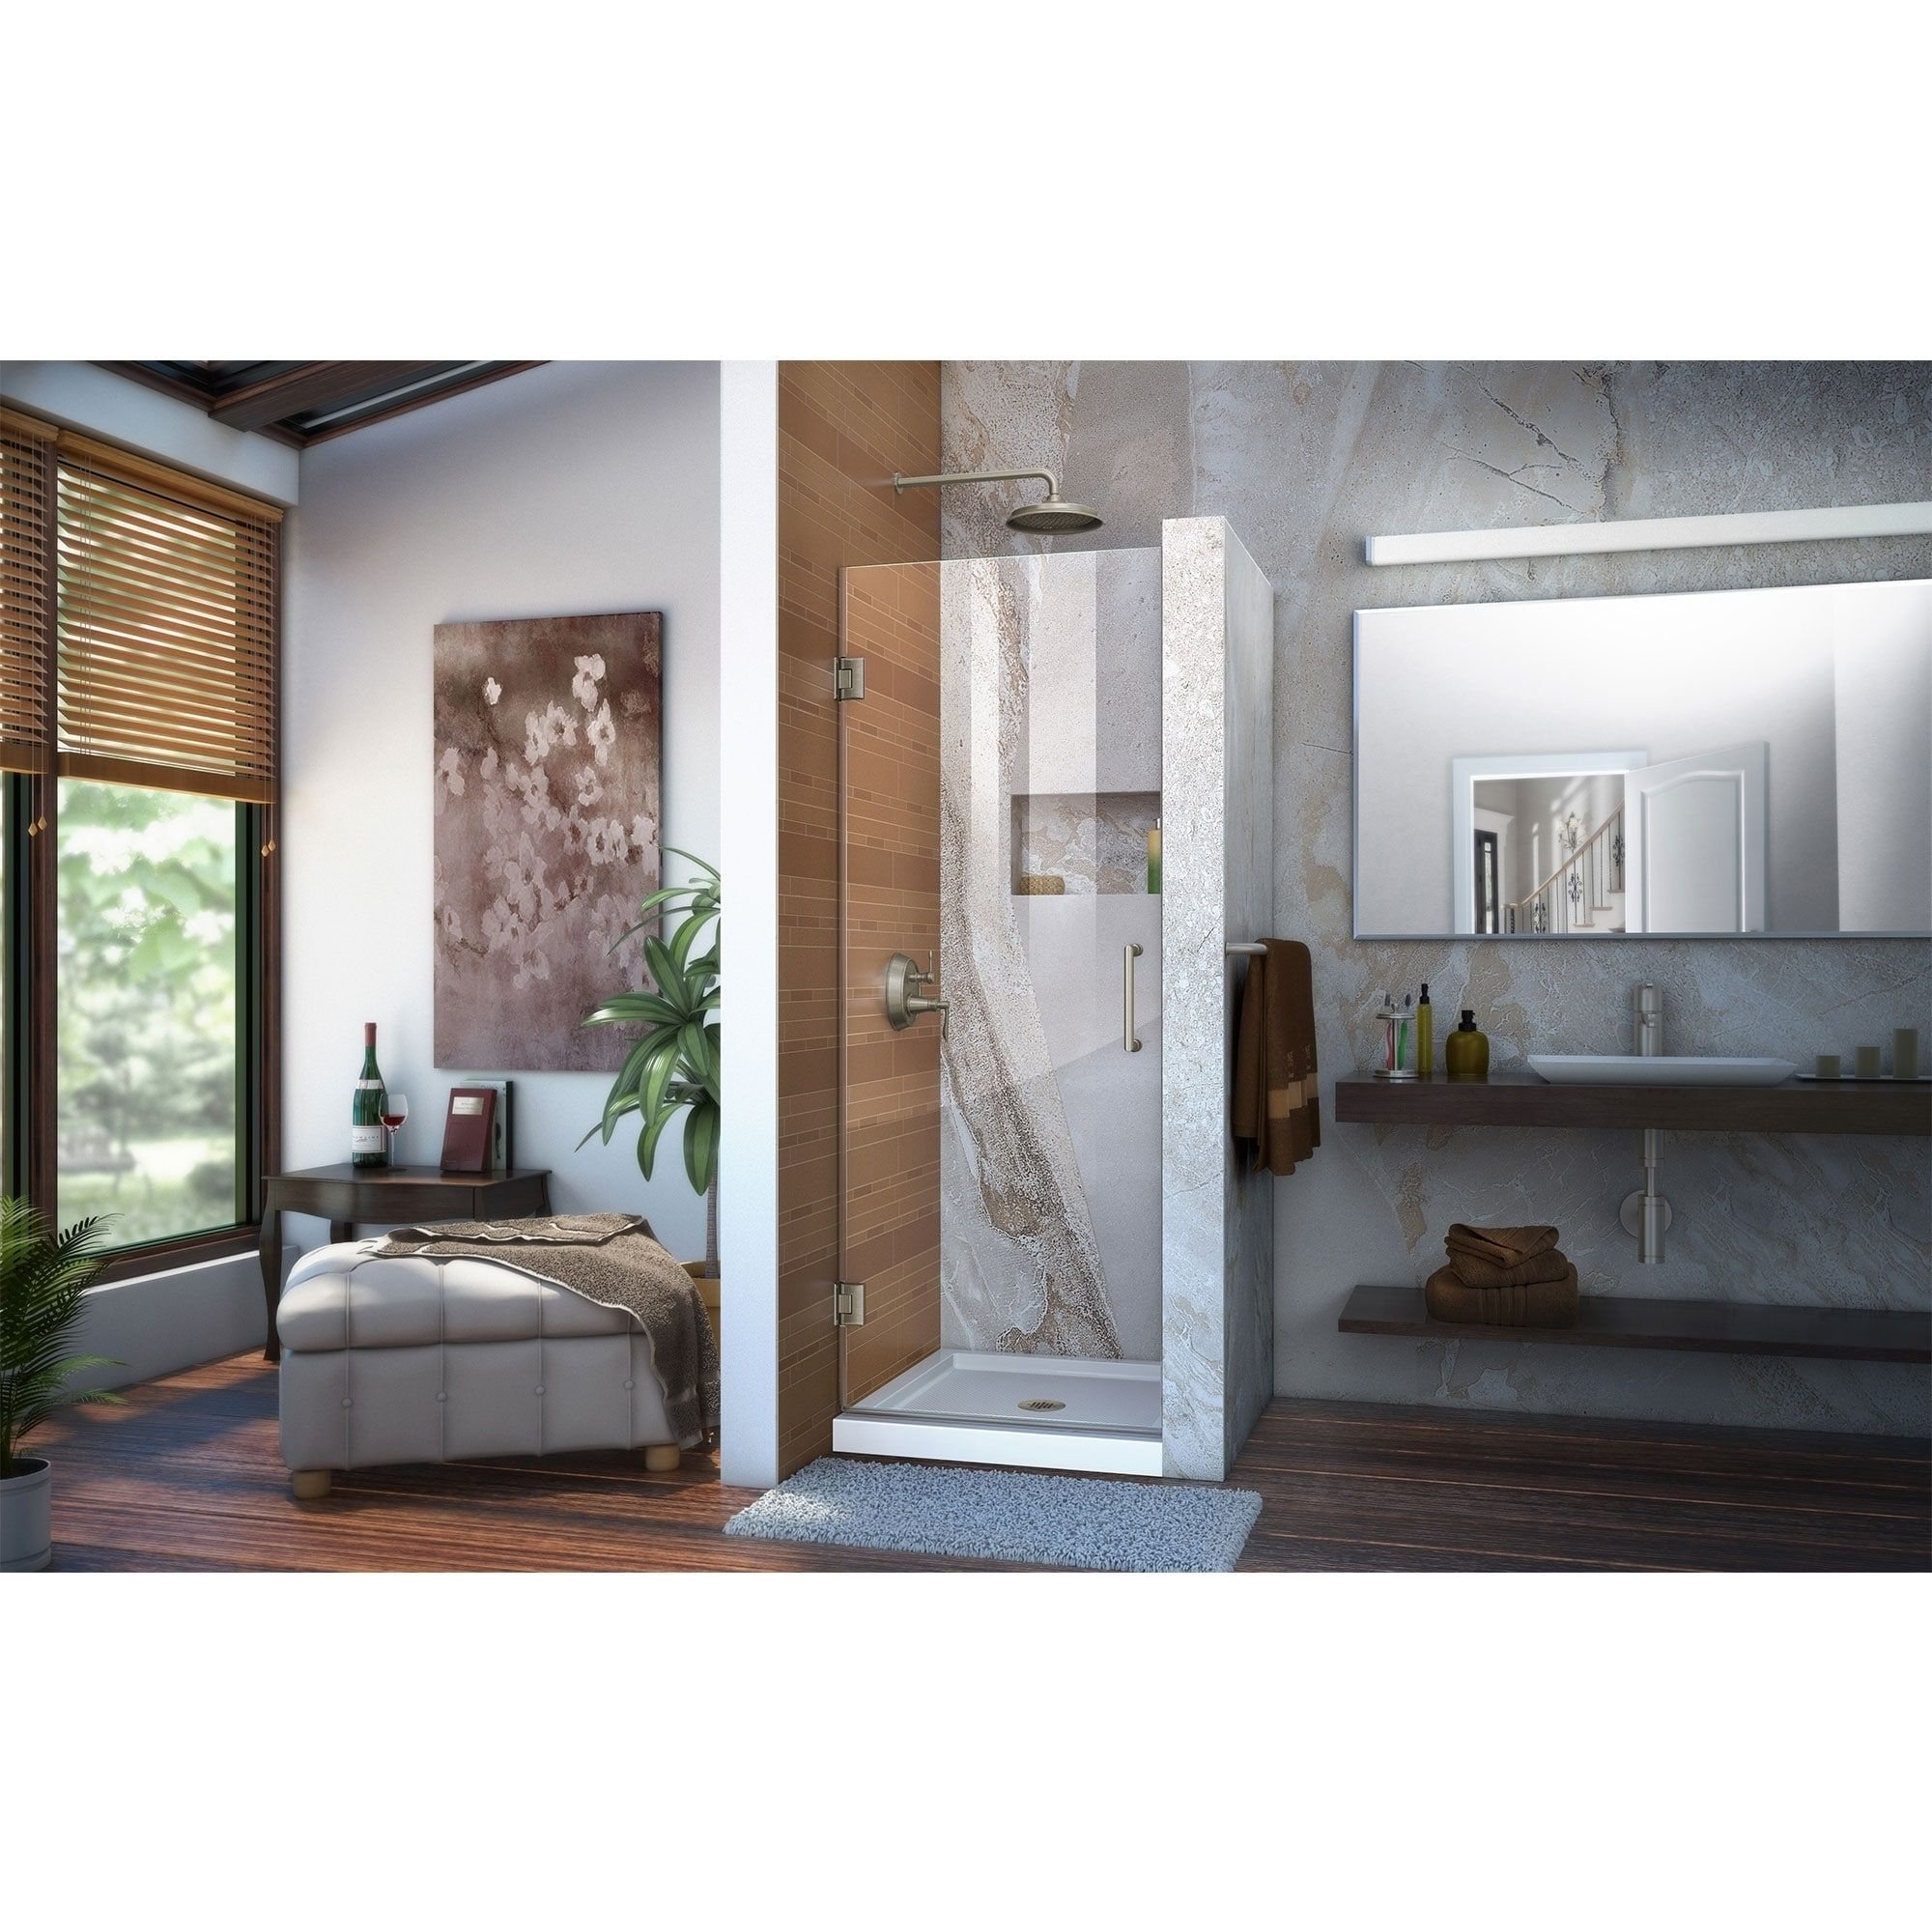 Dreamline Unidoor 23 In W X 72 In H Frameless Hinged Shower Door Clear Glass Chrome Finish Grey Shower Doors Frameless Shower Doors Frameless Shower